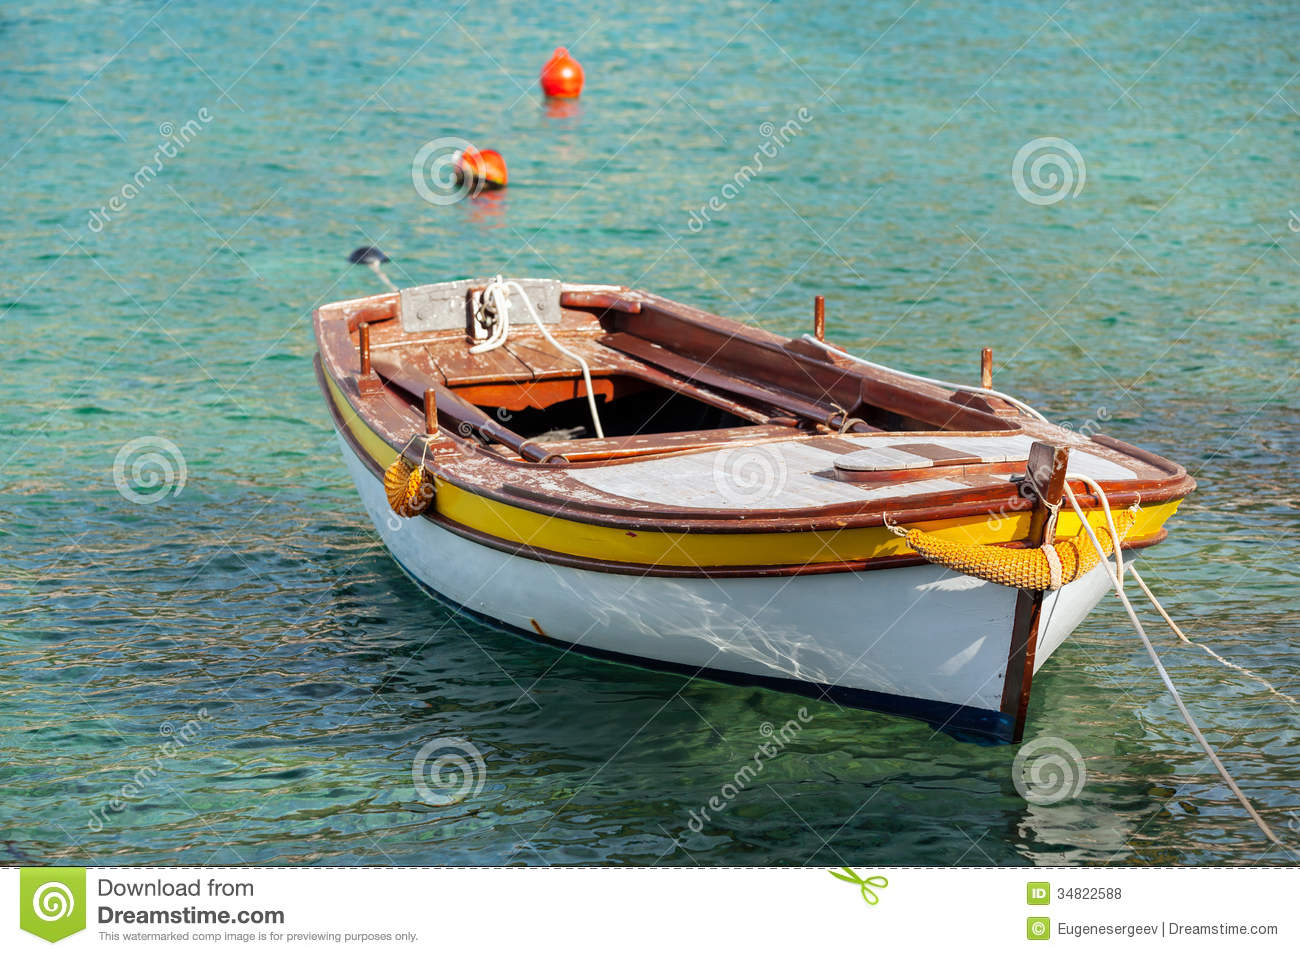 Wooden Fishing Boat Floats In Adriatic Sea Royalty Free Stock Photos - Image: 34822588